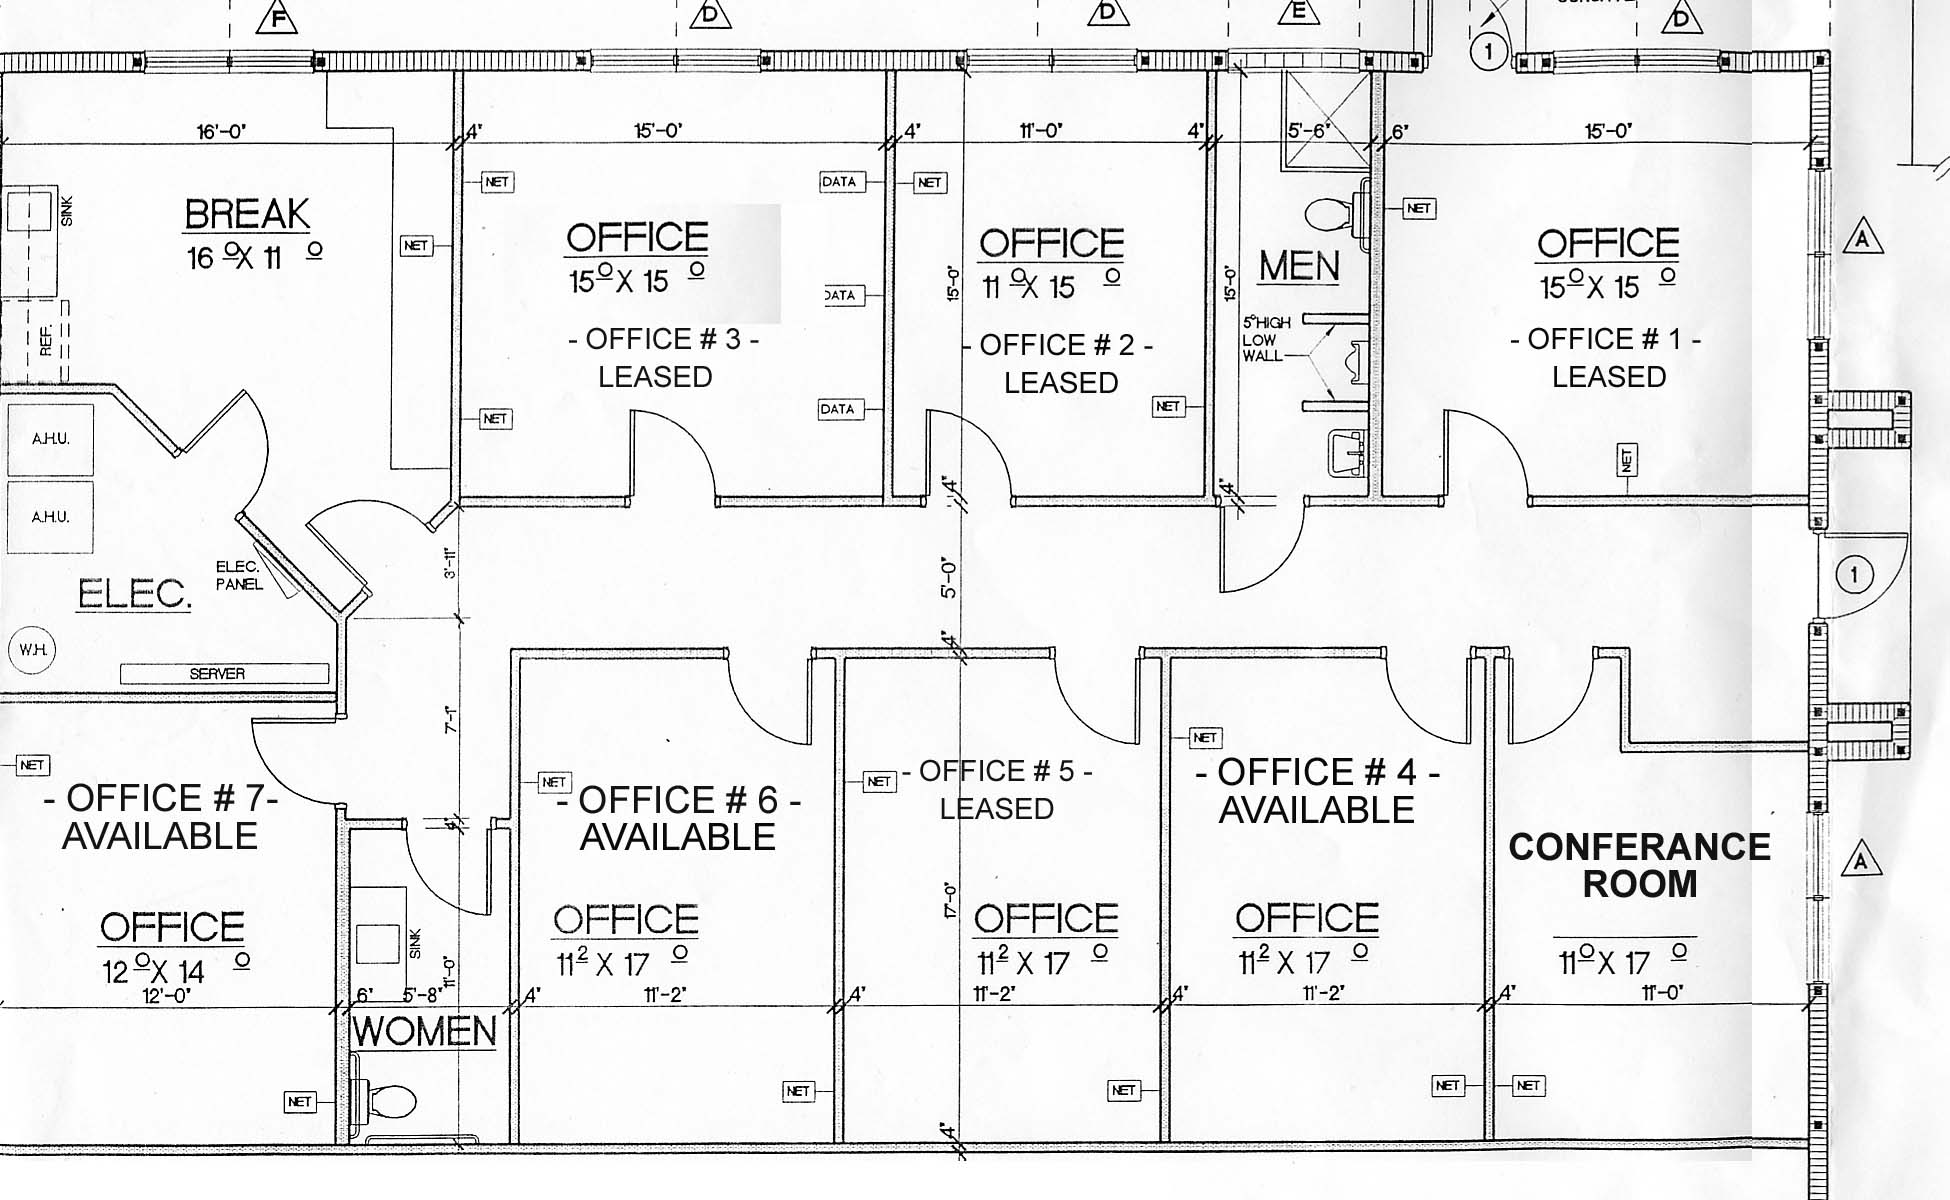 Cns properties llc gallery for Office layout design